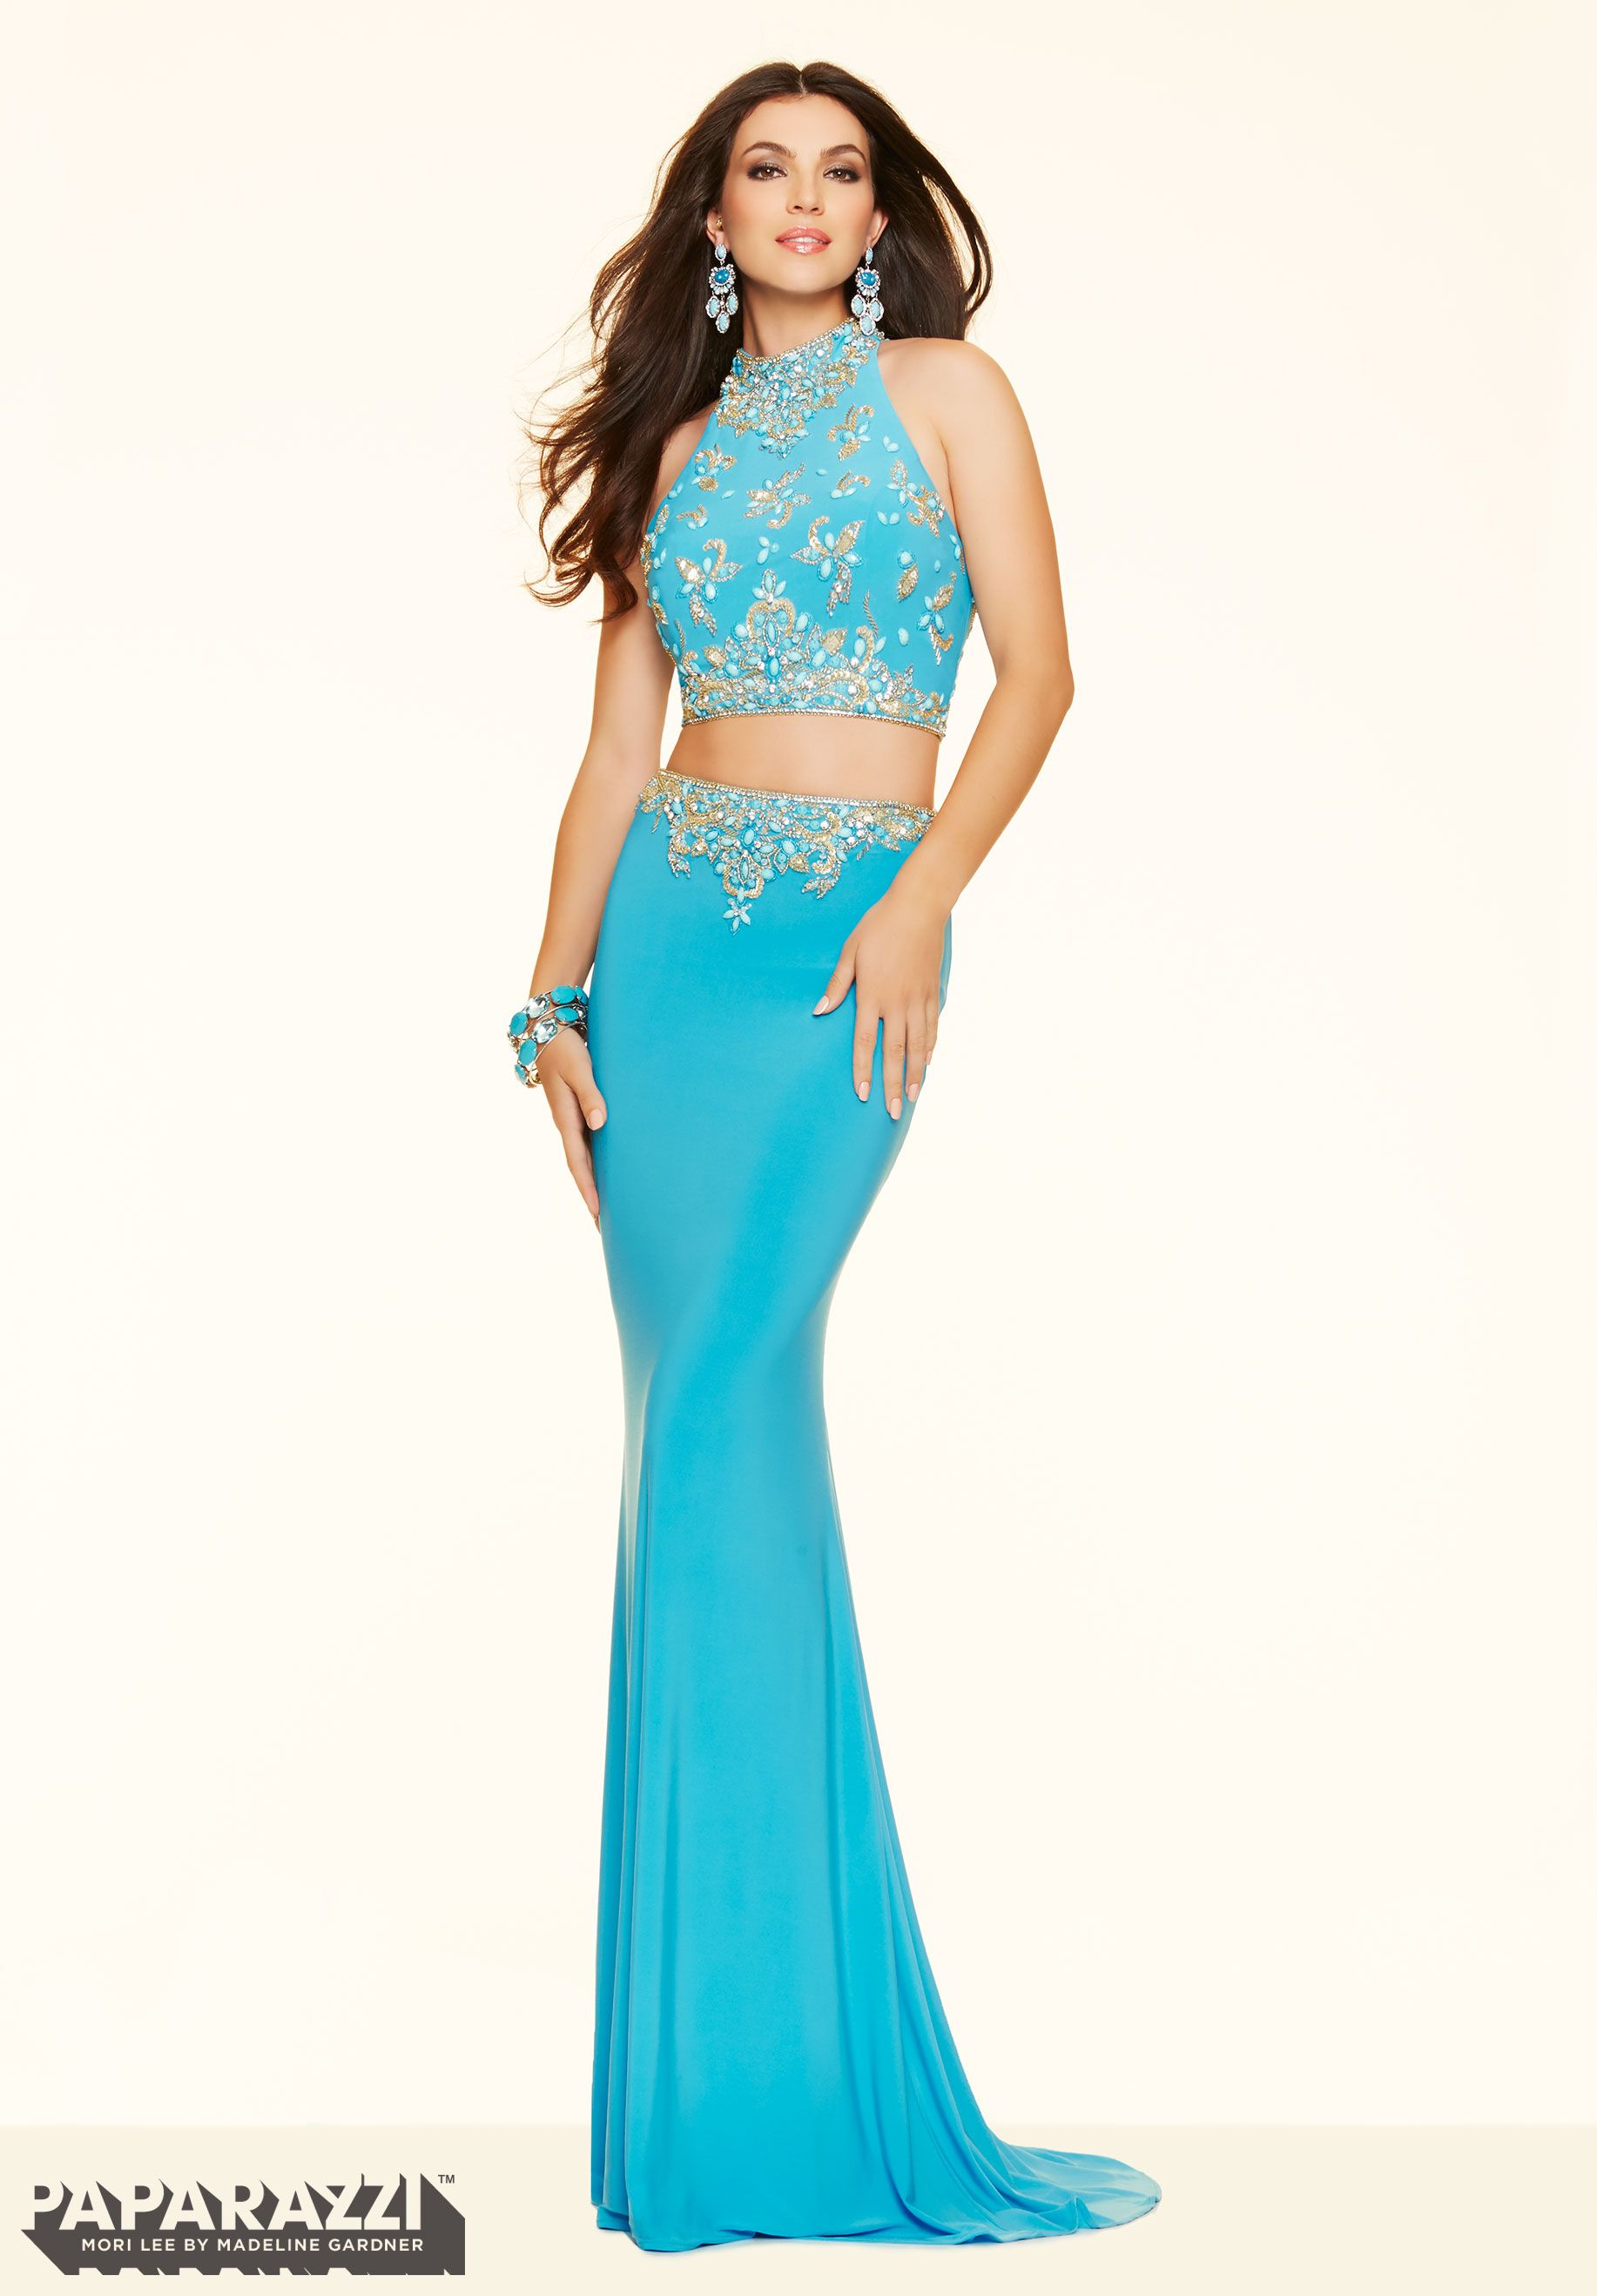 Prom Dresses by Paparazzi Prom - Dress Style 98004 | PROM ...